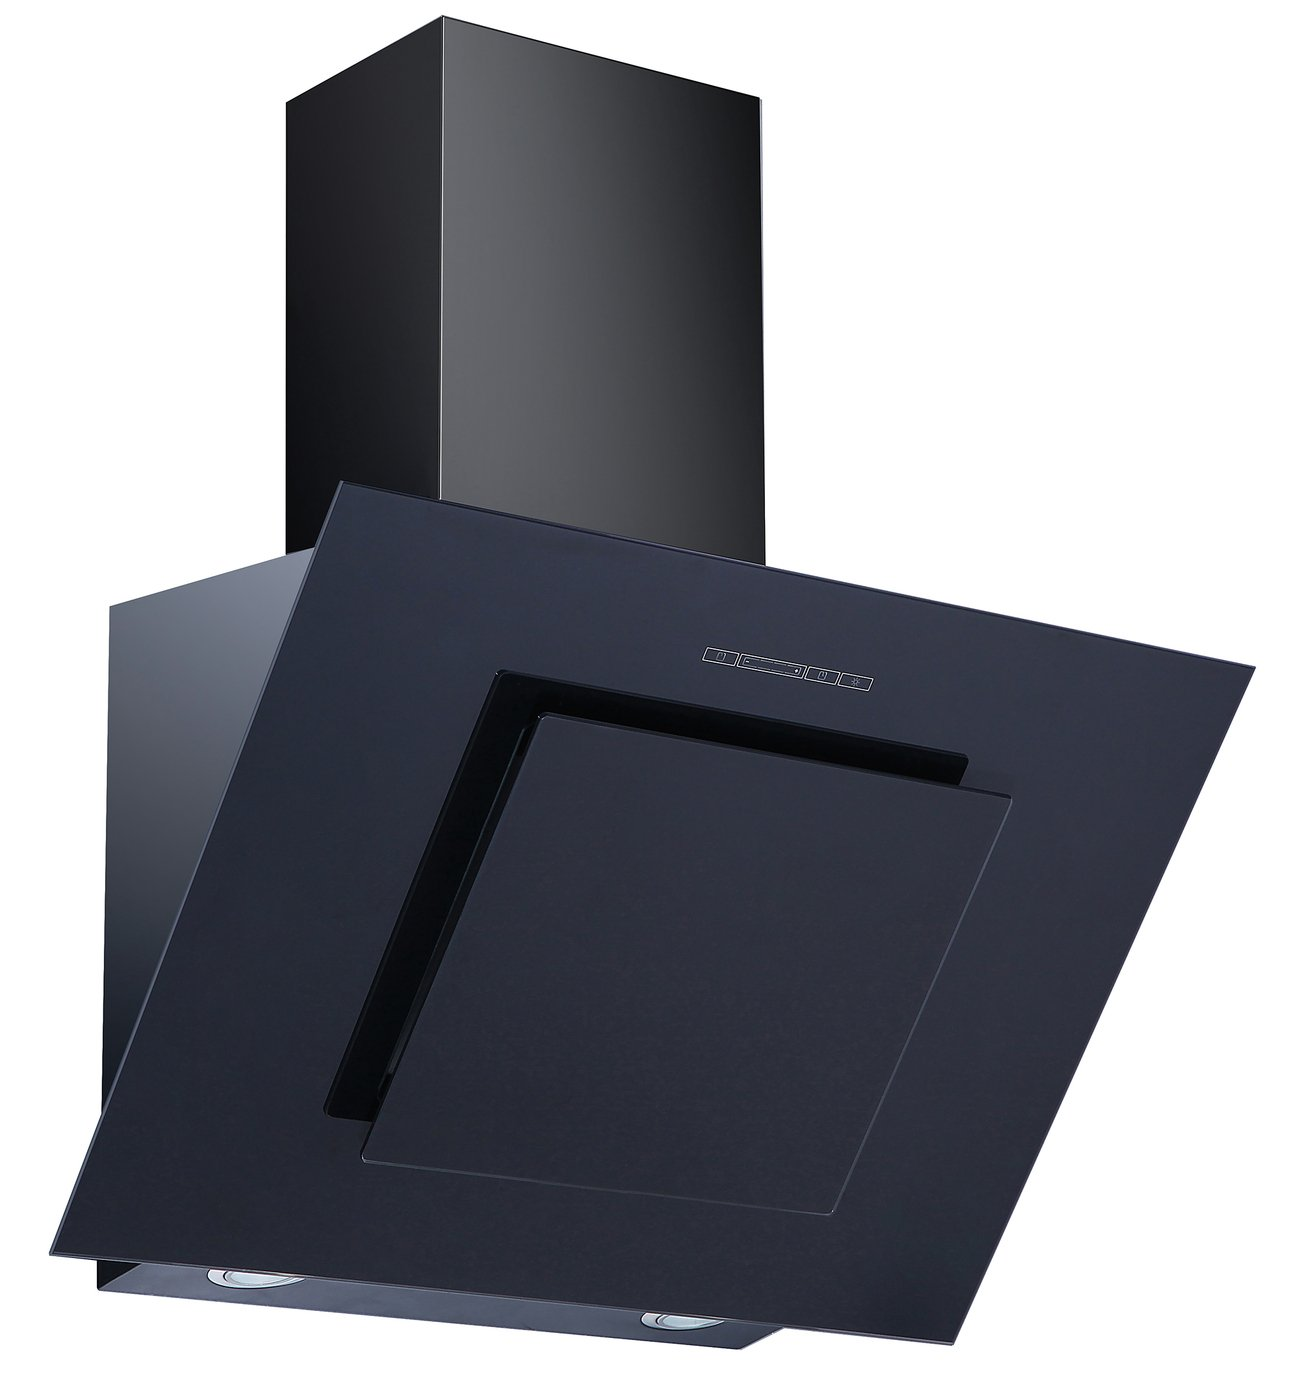 Bush BACH60B 60cm Angular Cooker Hood - Black